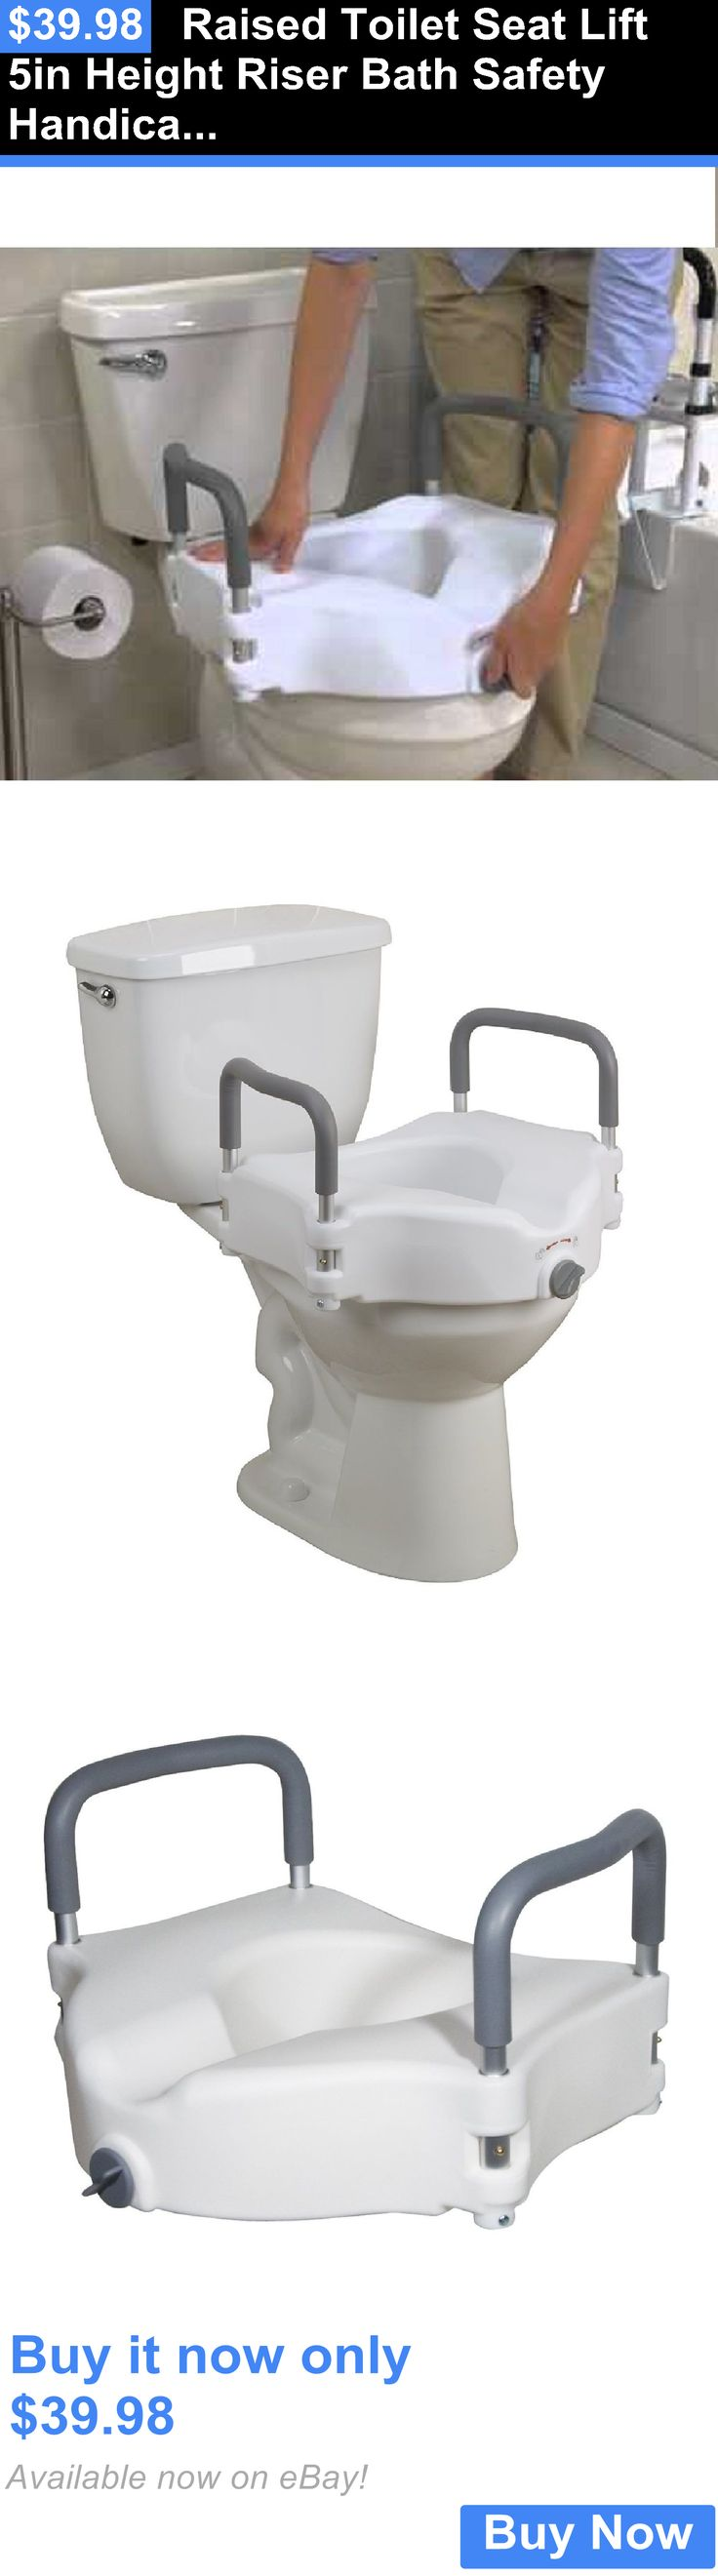 Toilet Seats: Raised Toilet Seat Lift 5In Height Riser Bath Safety Handicap W/Removable Arms BUY IT NOW ONLY: $39.98